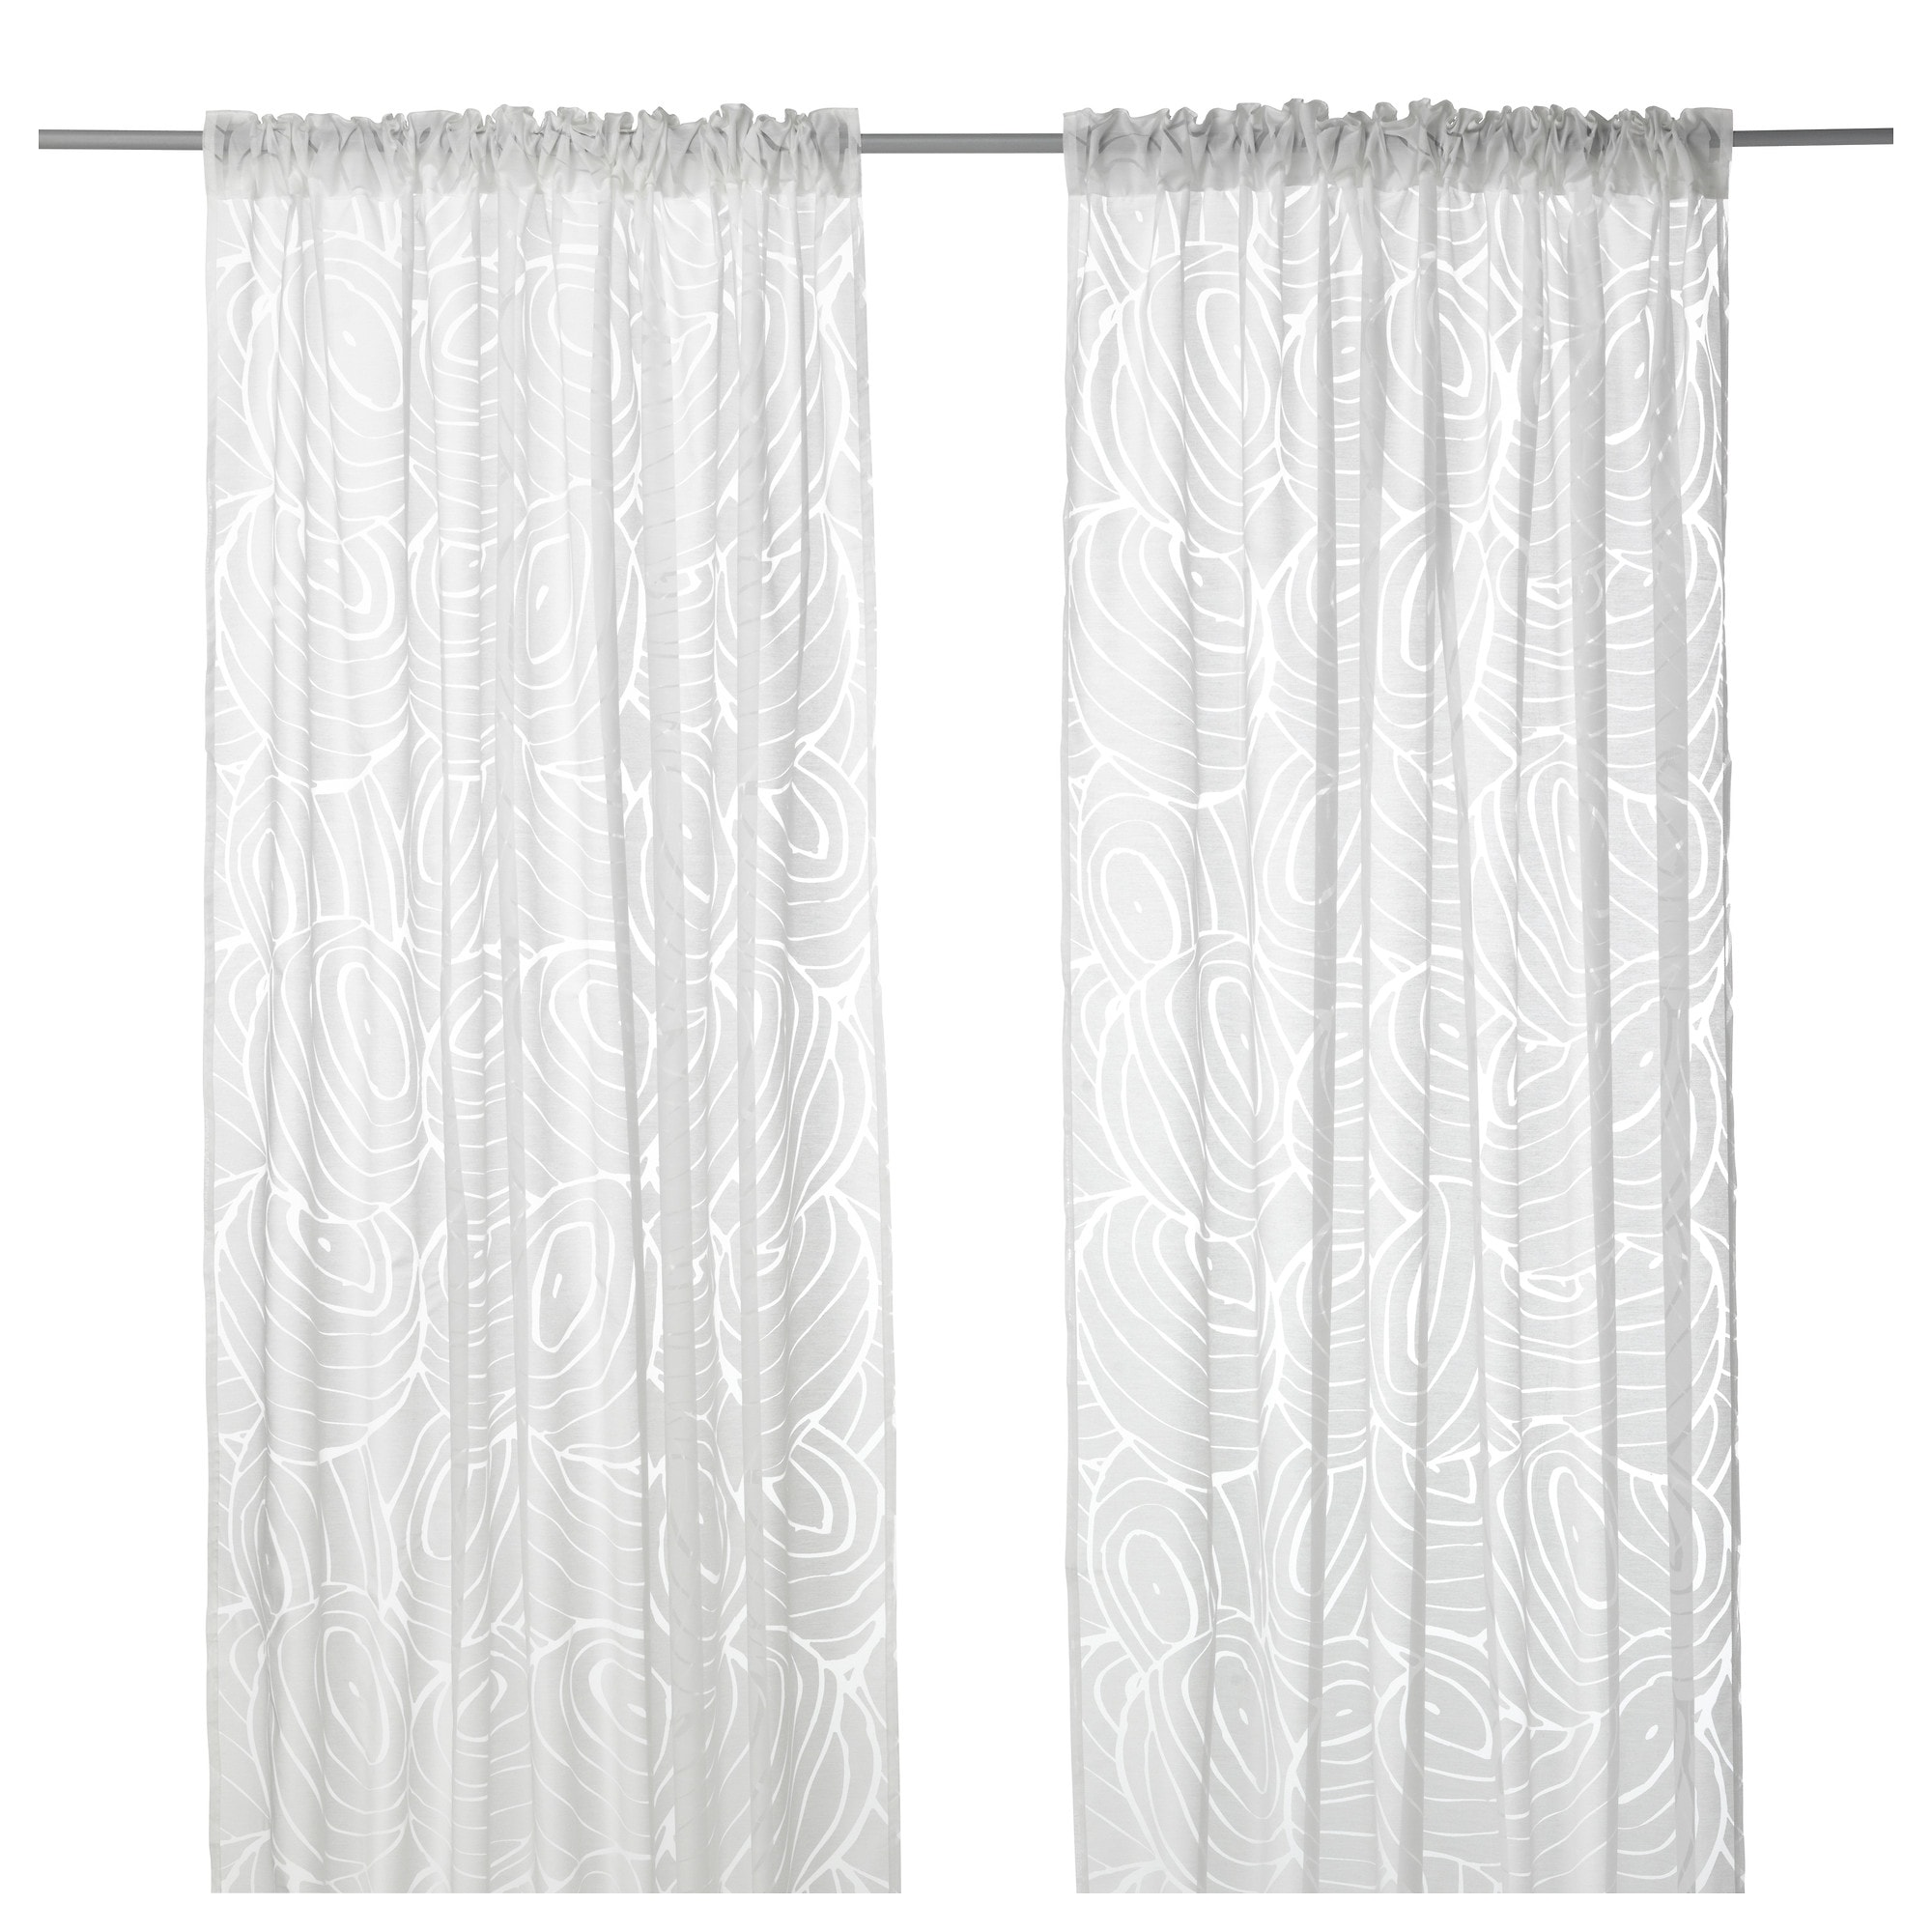 curtains products pair merete en us catalog white ikea